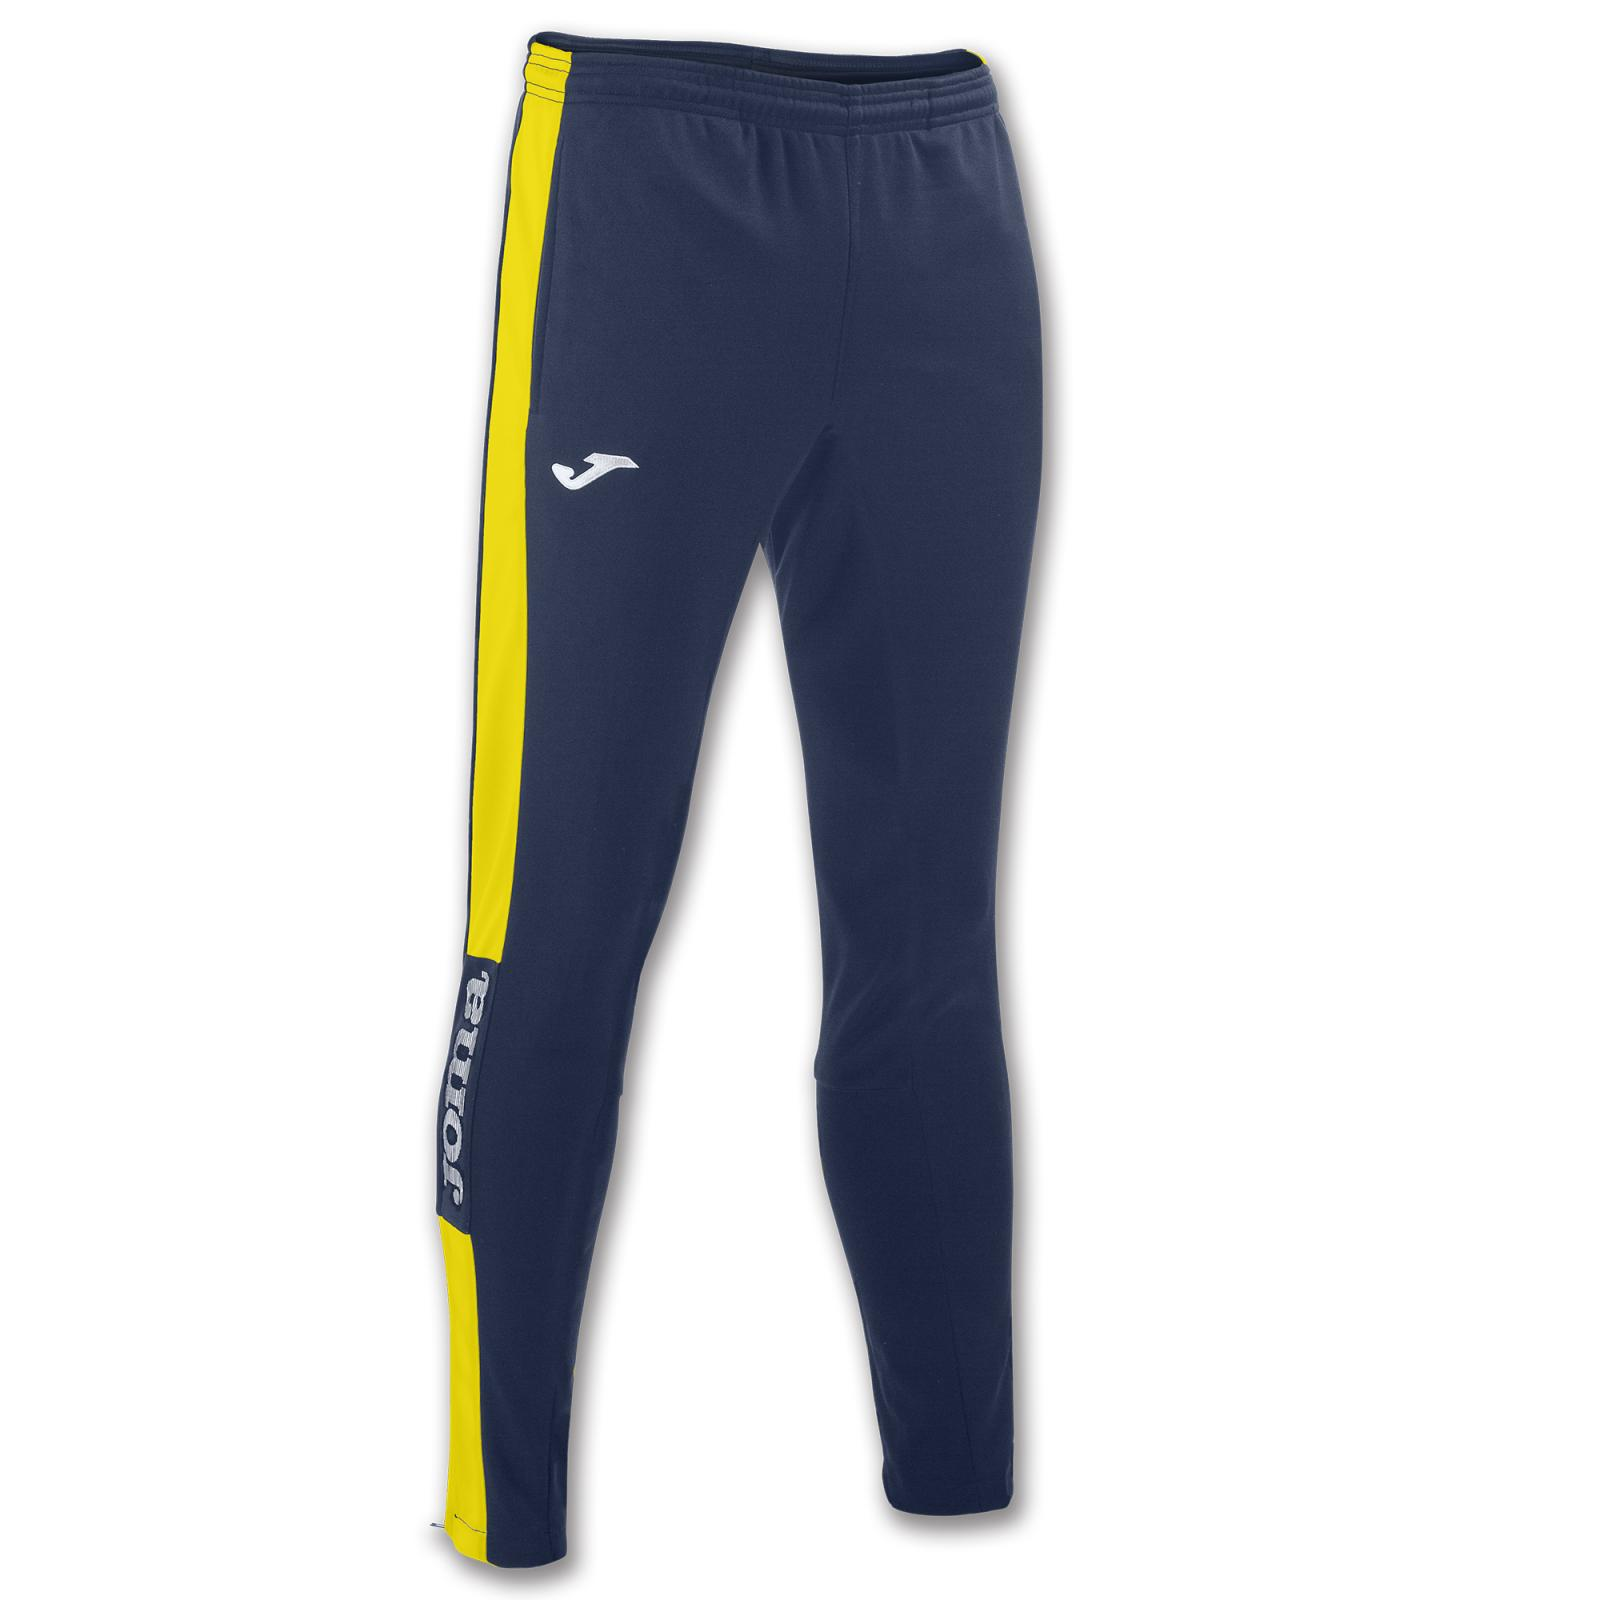 PANTALON LARGO CHAMPION IV MARINO-AMARILLO 100761.309